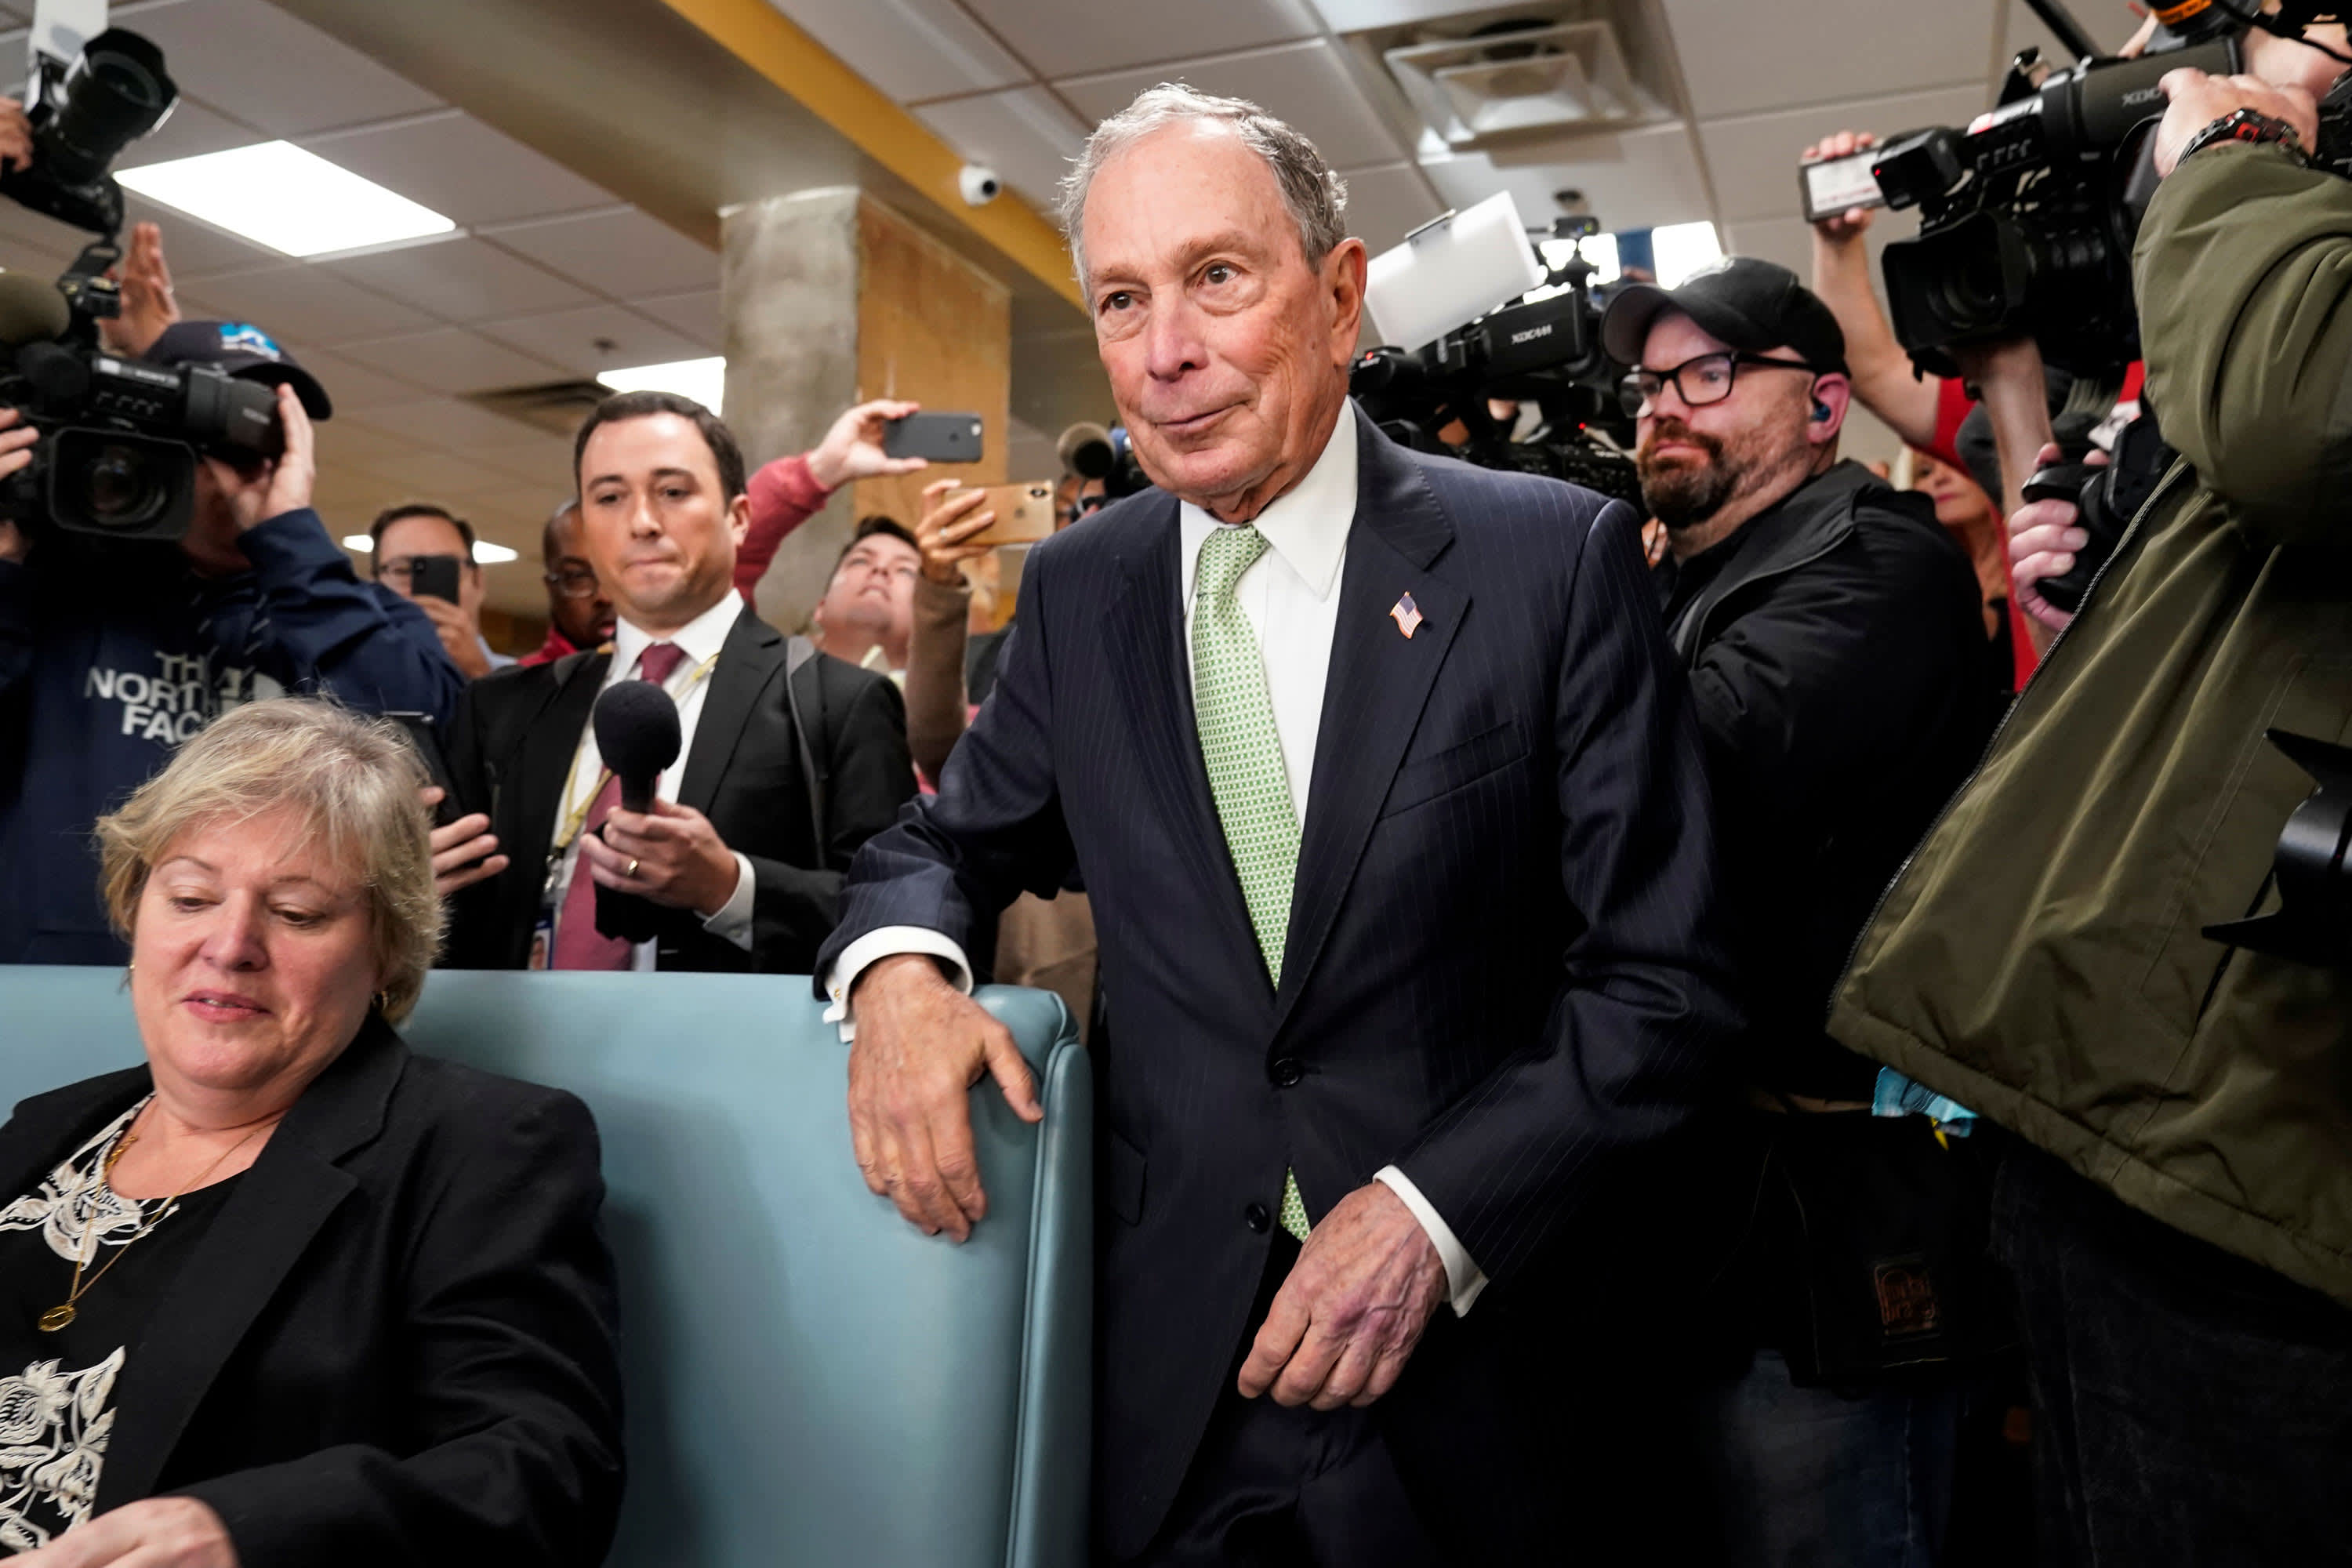 Bloomberg's huge donation helps his gun safety group raise record revenue in 2018